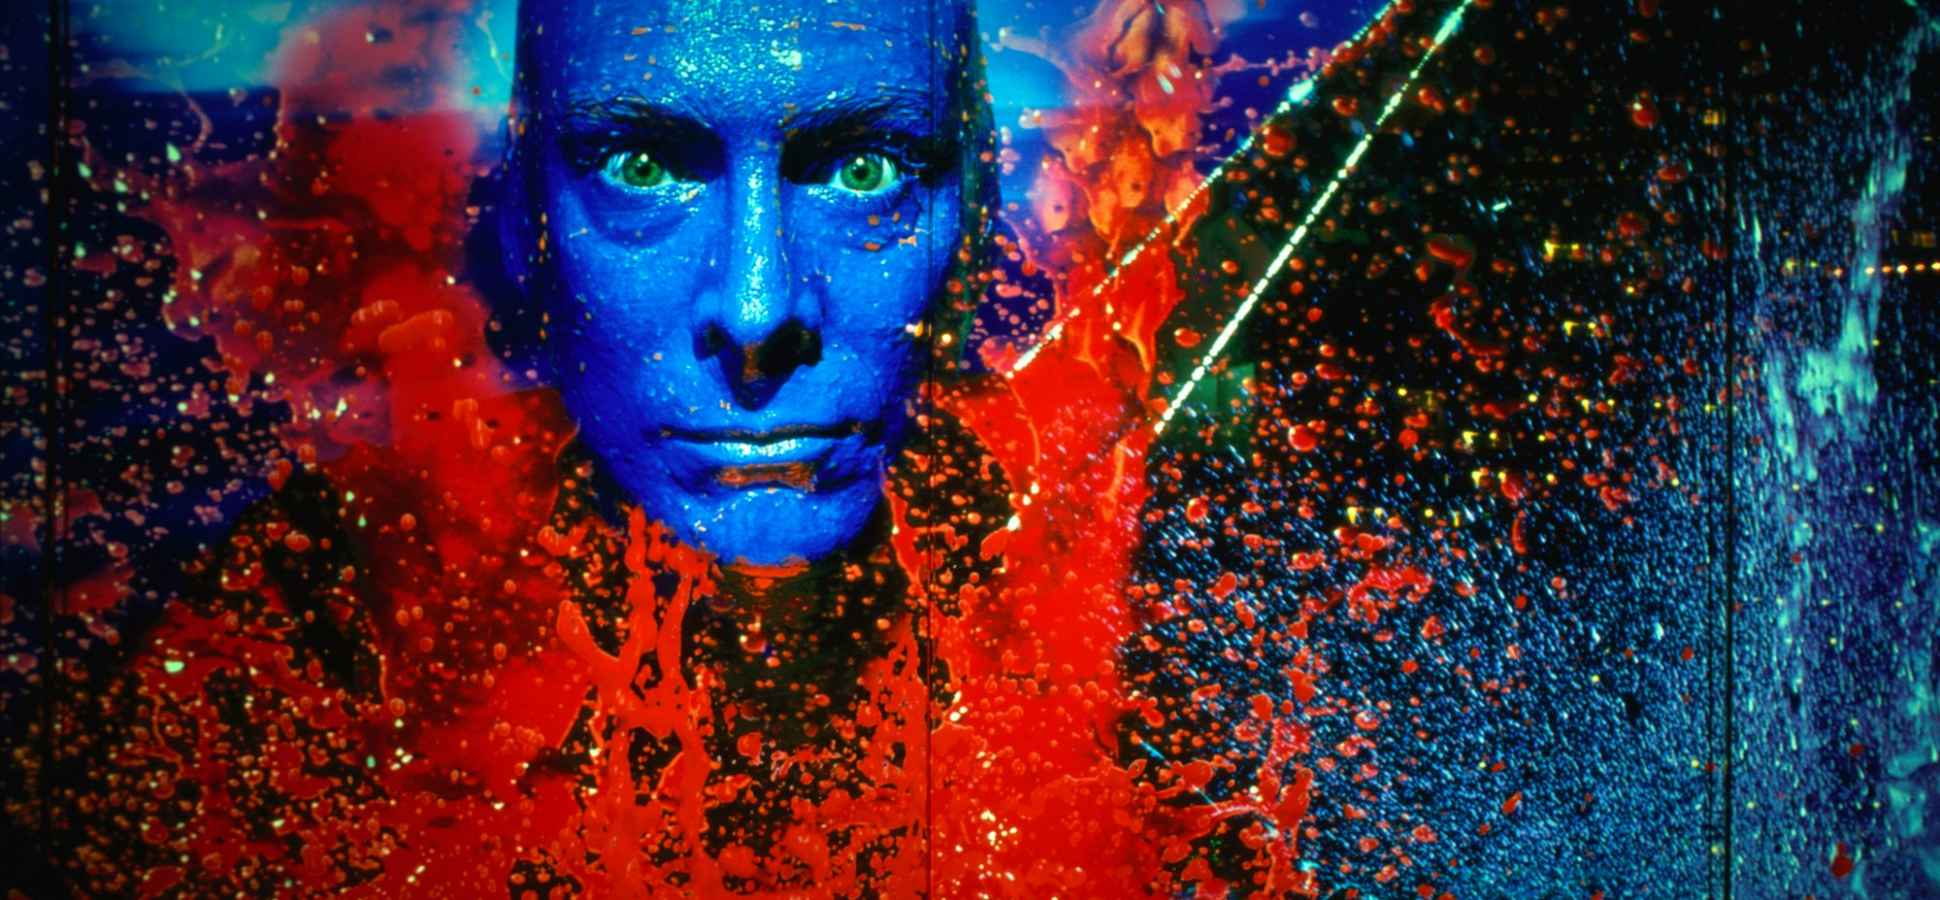 How the Blue Man Group Stays Creative